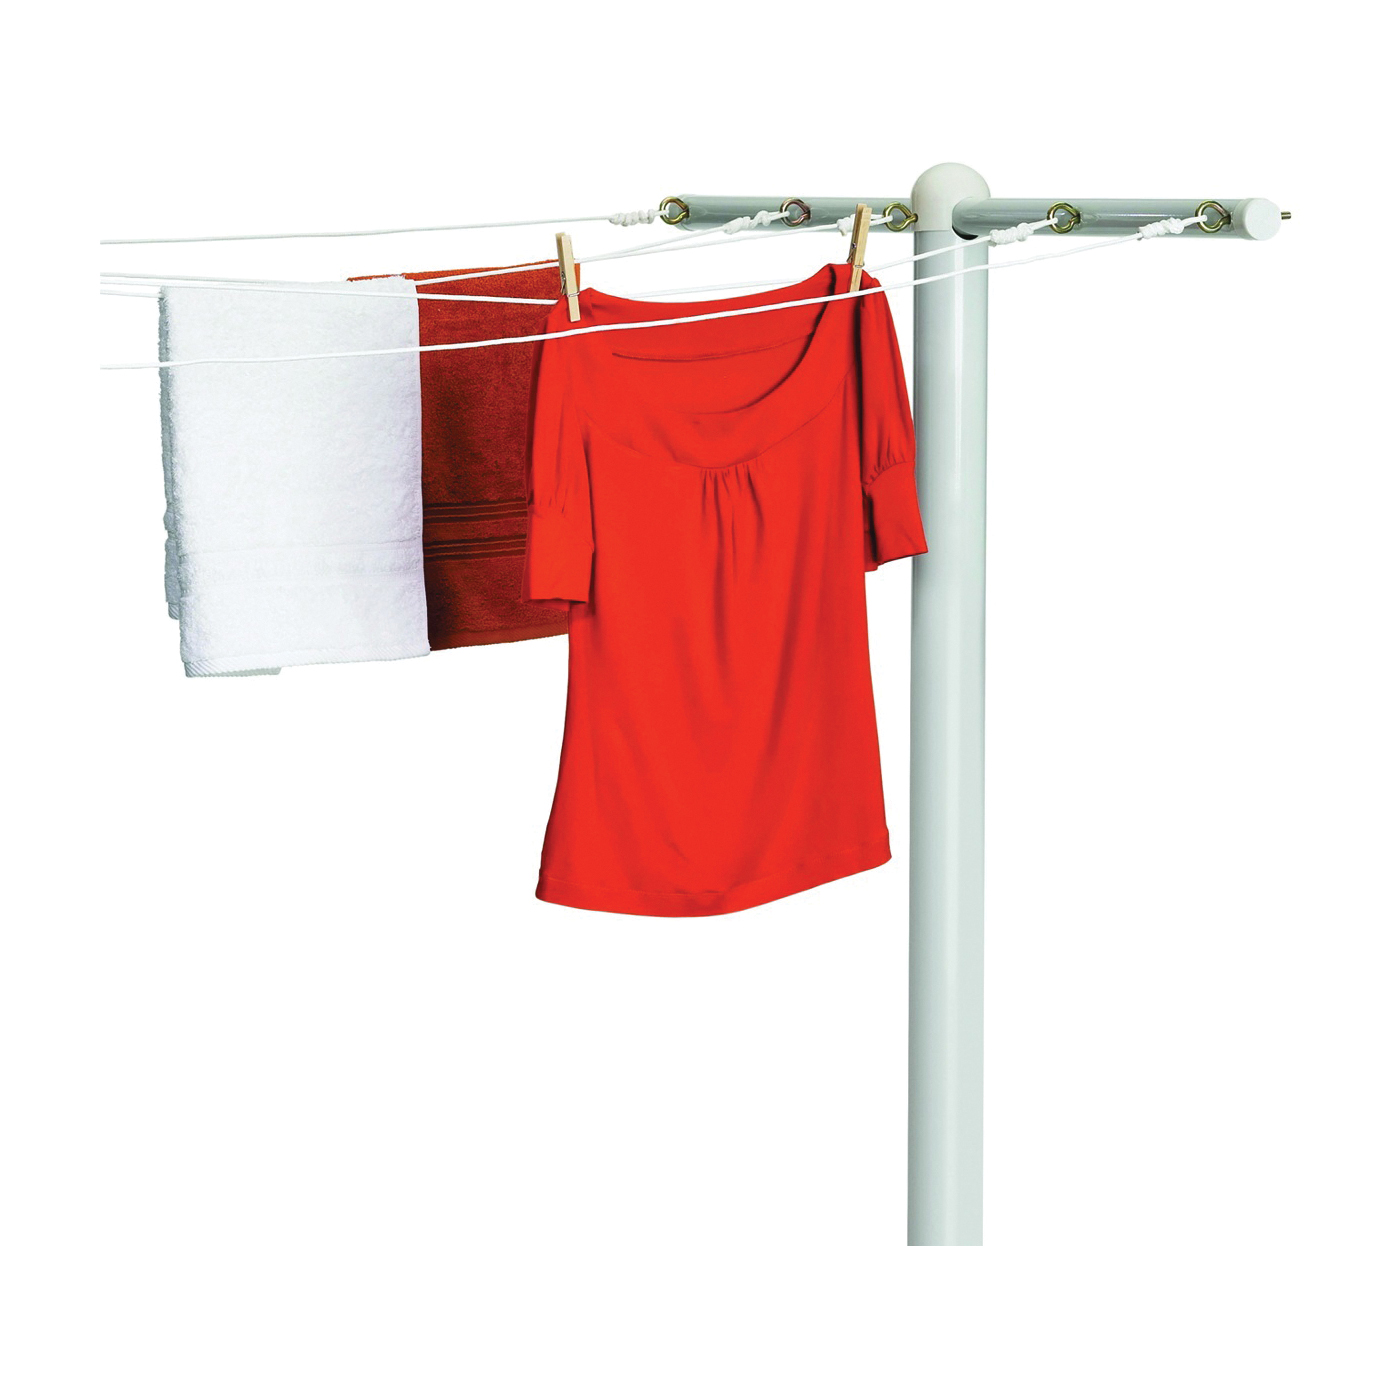 Picture of Honey-Can-Do DRY-01452 Drying Pole, 3 in OAW, 45-3/4 in OAD, Steel